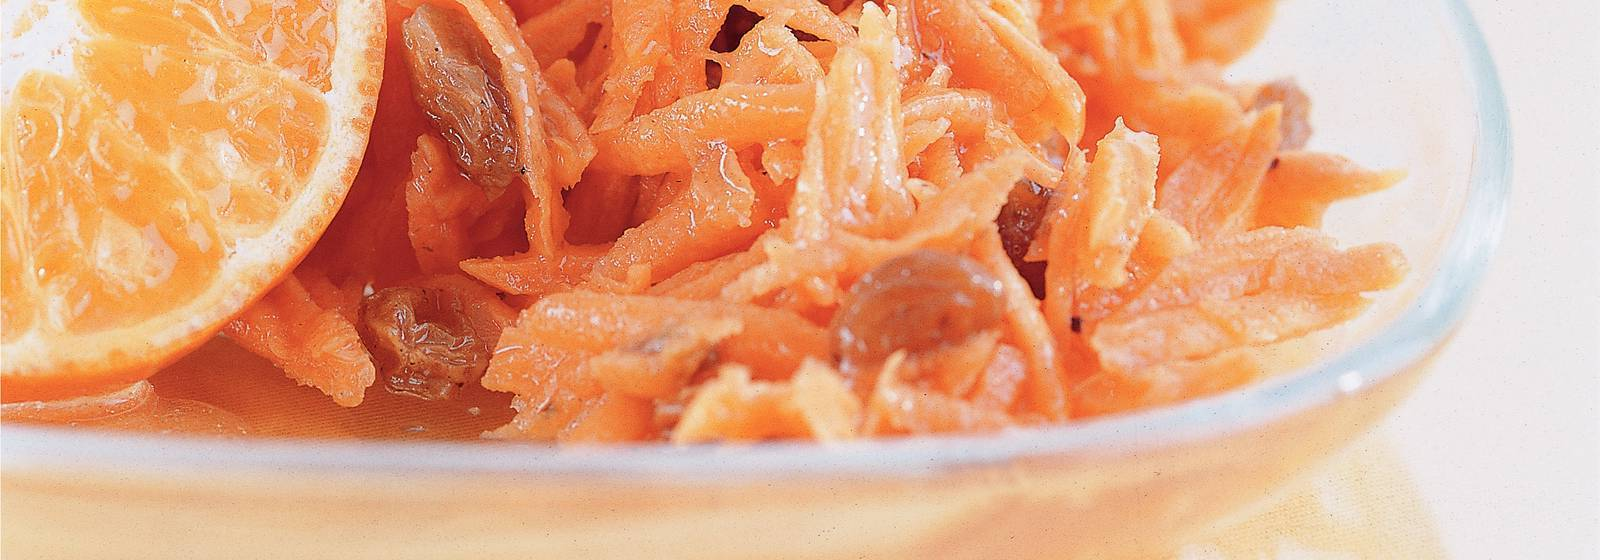 Carrot salad with mandarin and raisins